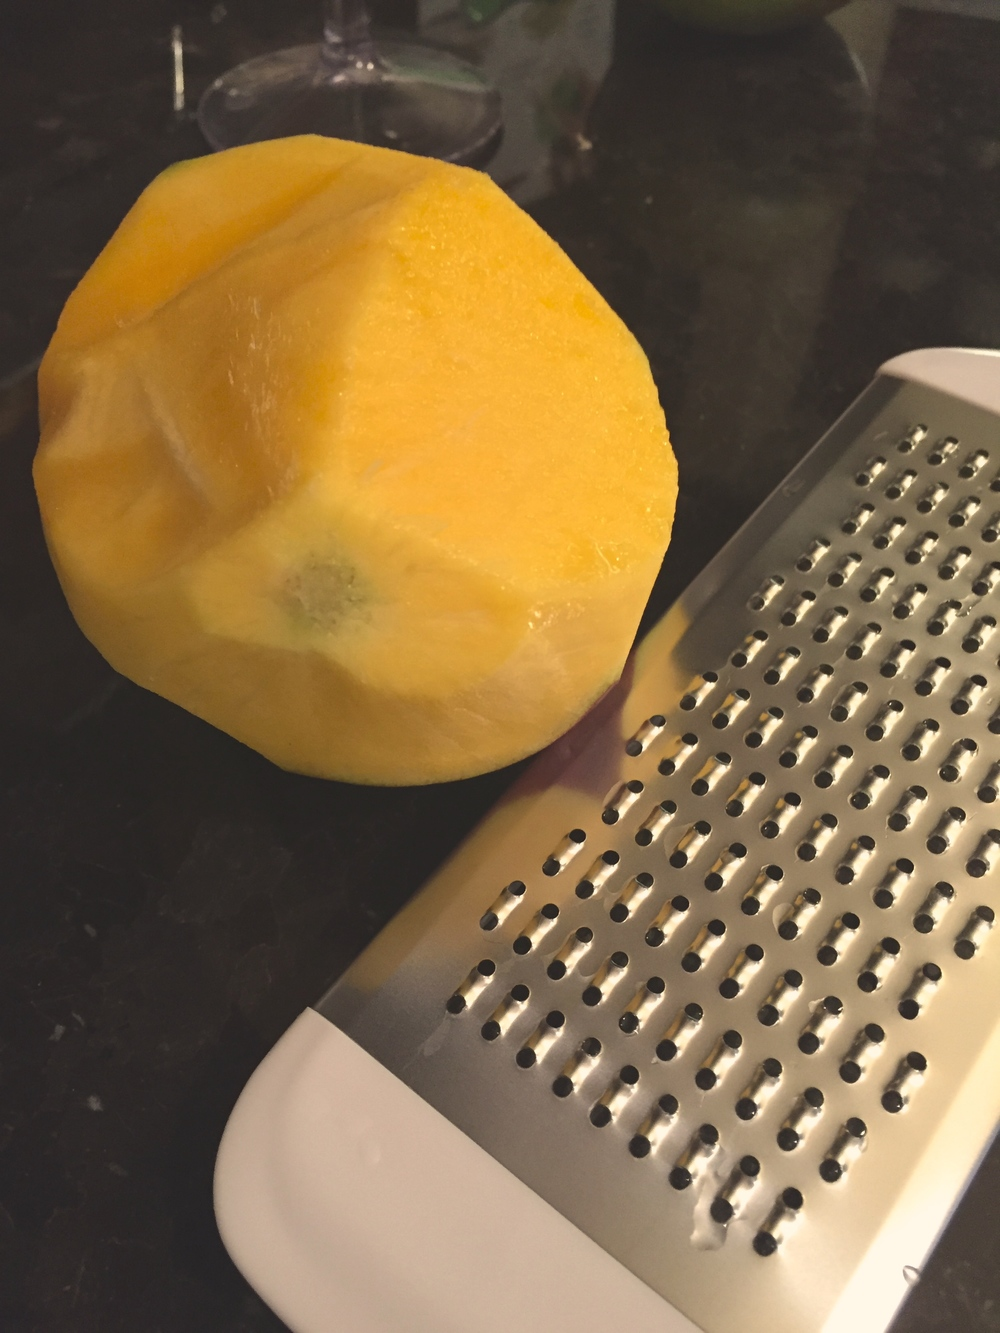 Grated fresh mango makes the flavor burst...yum!